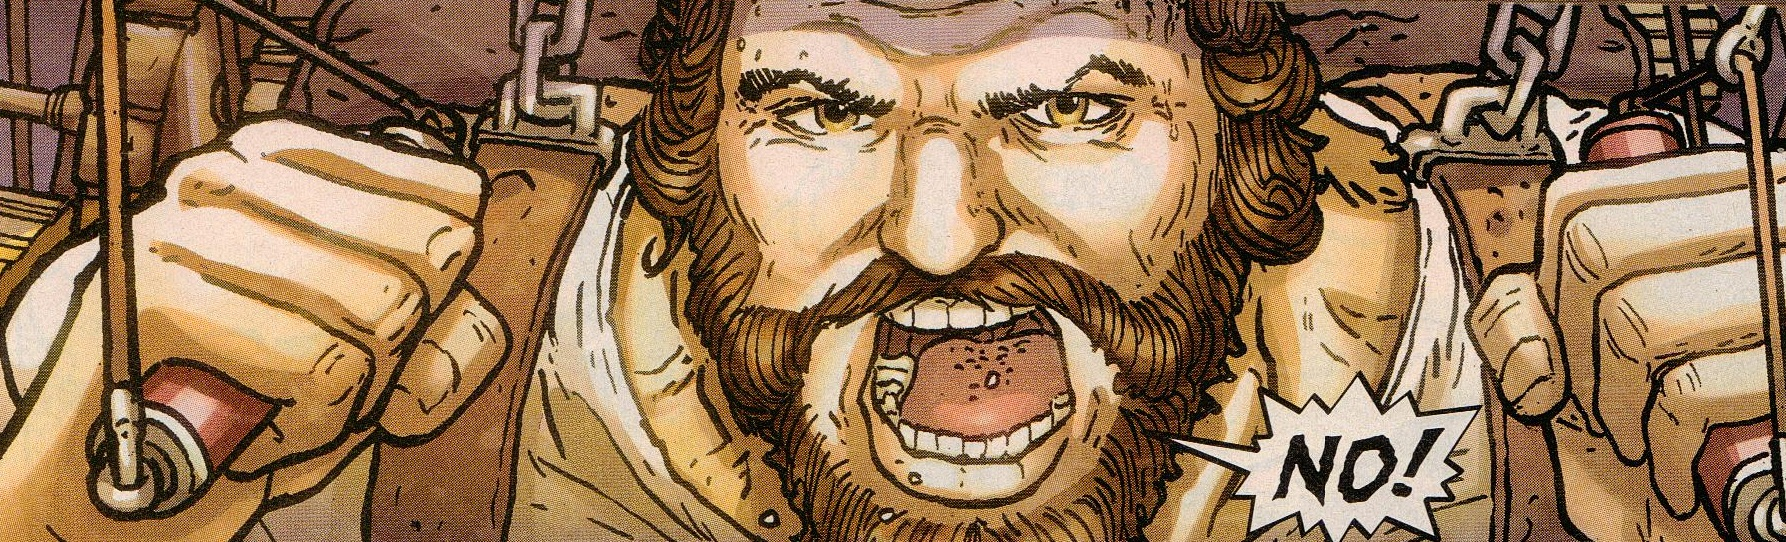 Archimedes (Earth-616)